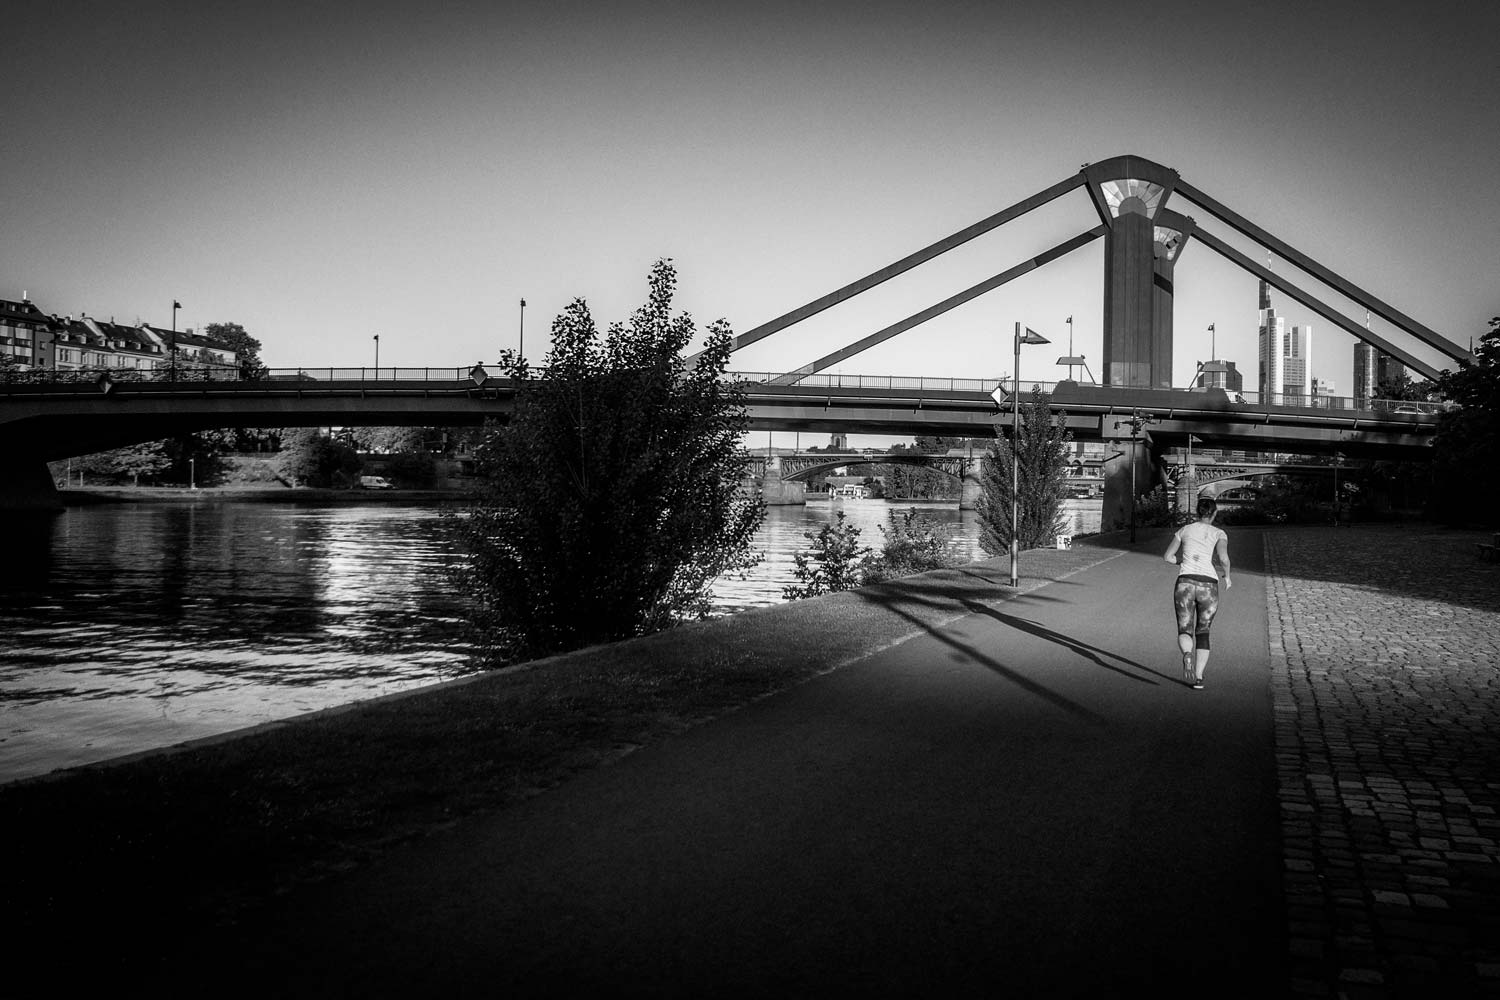 jogging-main-river-frankfurt.jpg